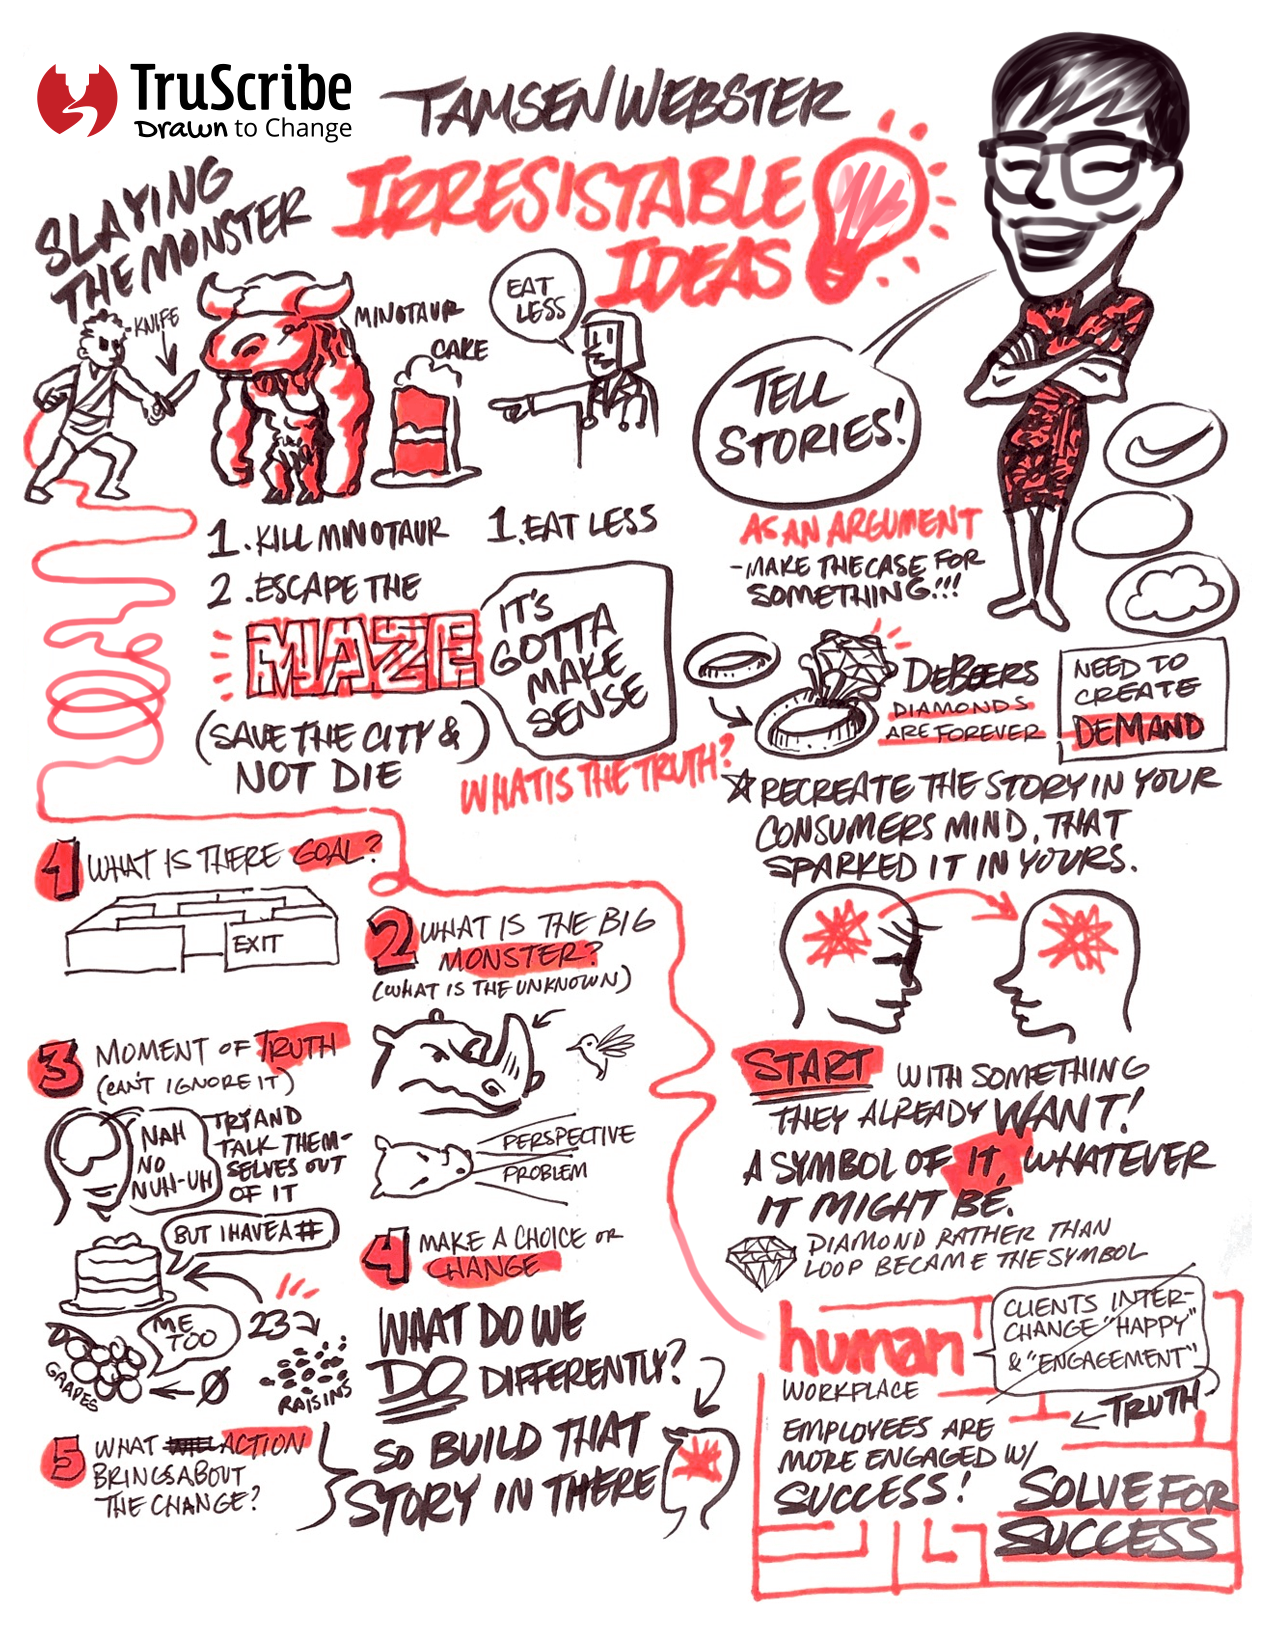 Sample Sketchnote - Tamsen Webster